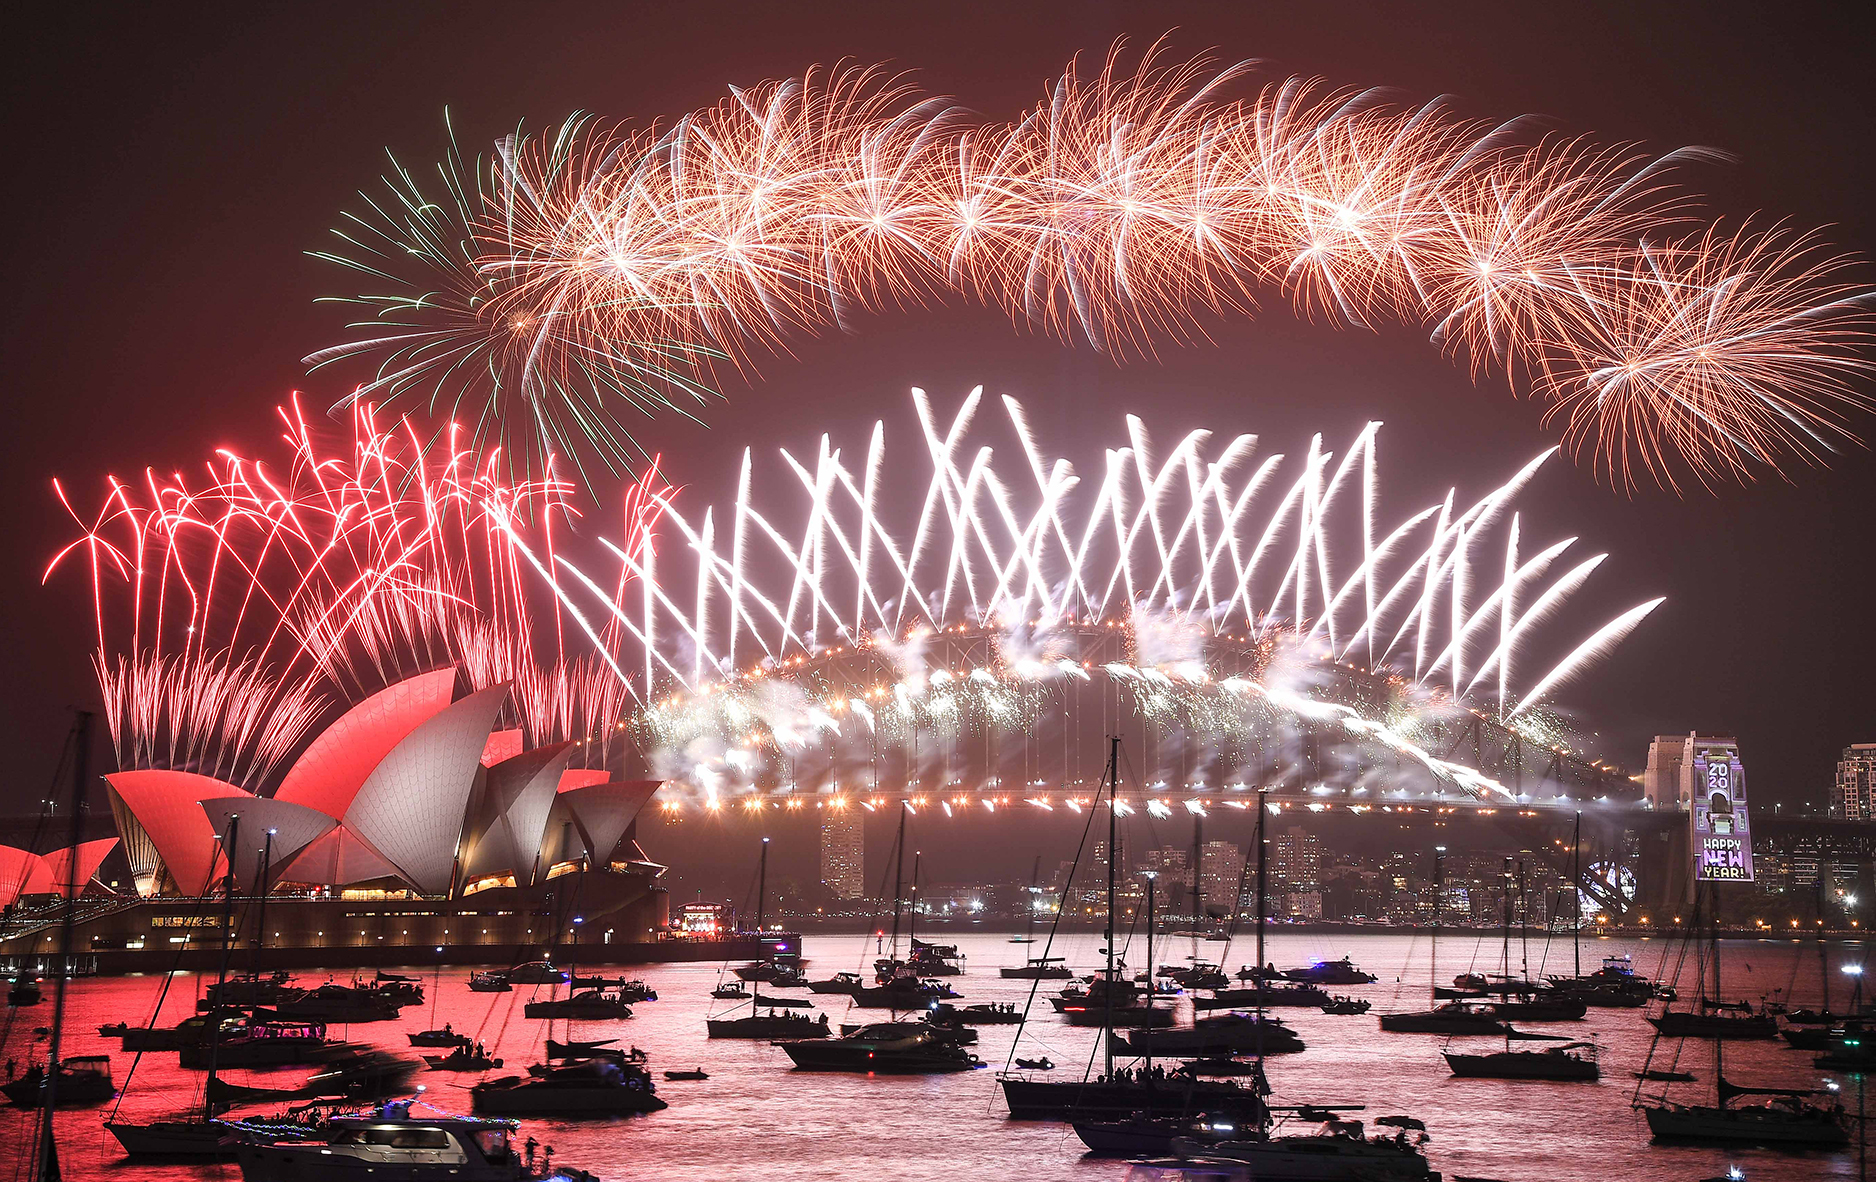 Pictures: New Year's Eve celebrations around the world